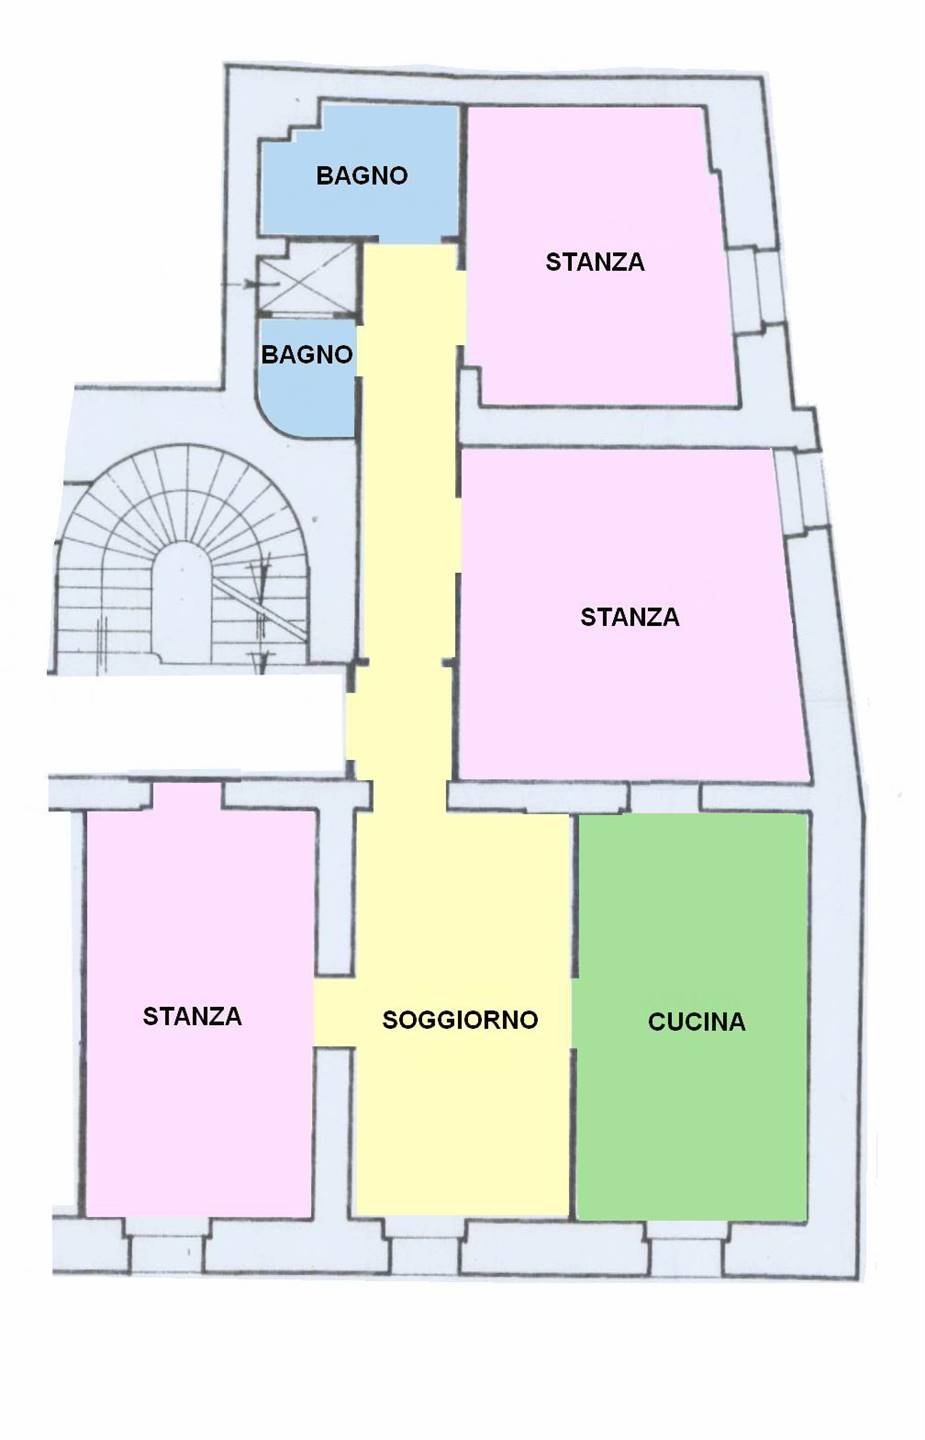 CENTRO STORICO, BOLZANO, Apartment for sale of 141 Sq. mt., Habitable, Heating Centralized, Energetic class: G, placed at 1°, composed by: 4 Rooms,